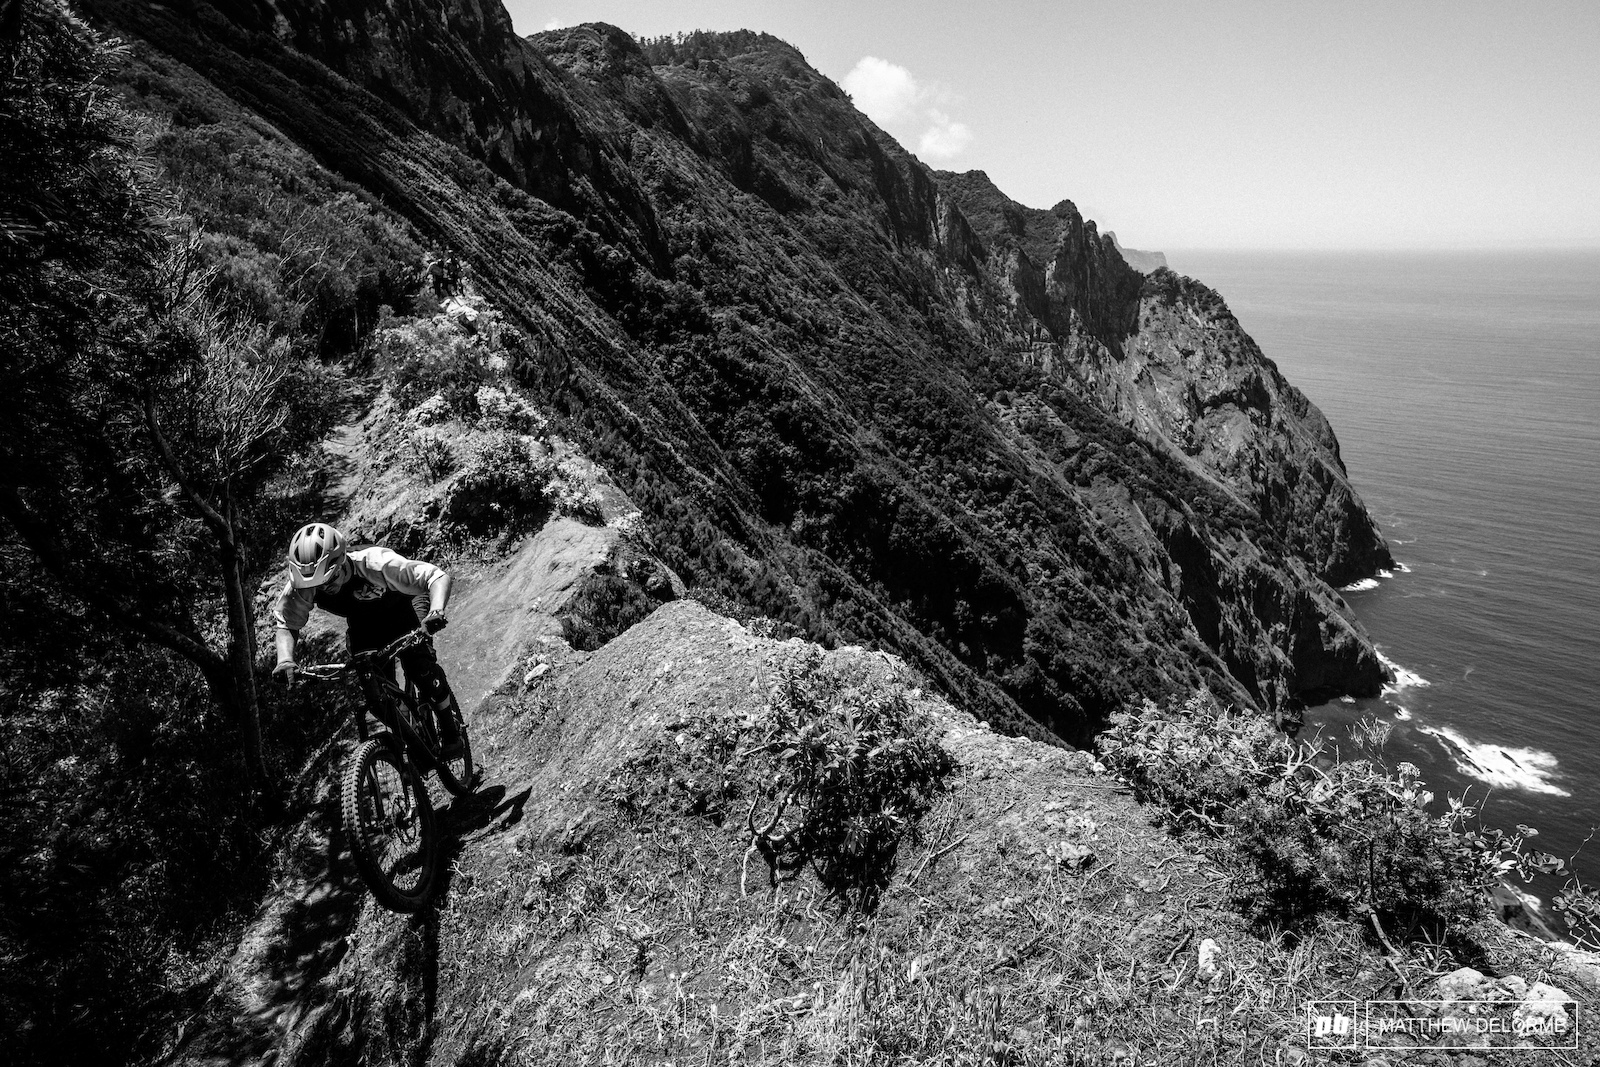 That quintessential Madeira view. We can t wait to get racing on this ridge line.